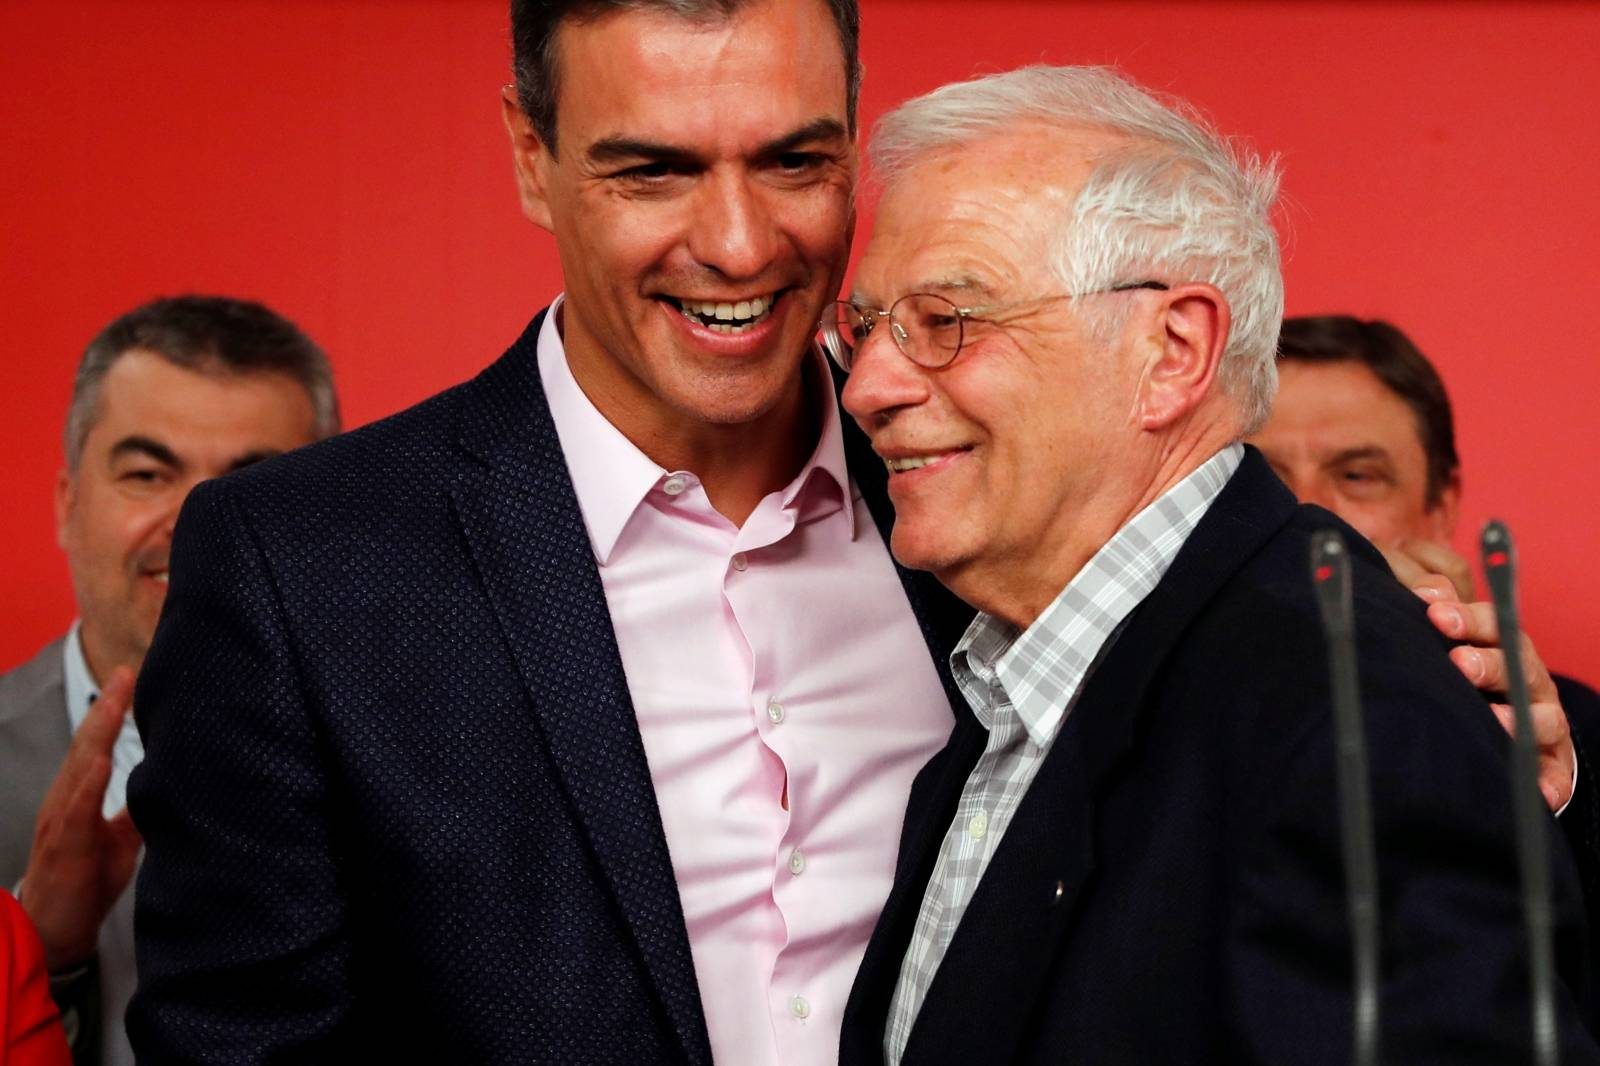 Socialist party (PSOE) candidate for European elections Borrell and Spanish acting PM Sanchez rembrace as they address the media following election results at the party headquarters in Madrid